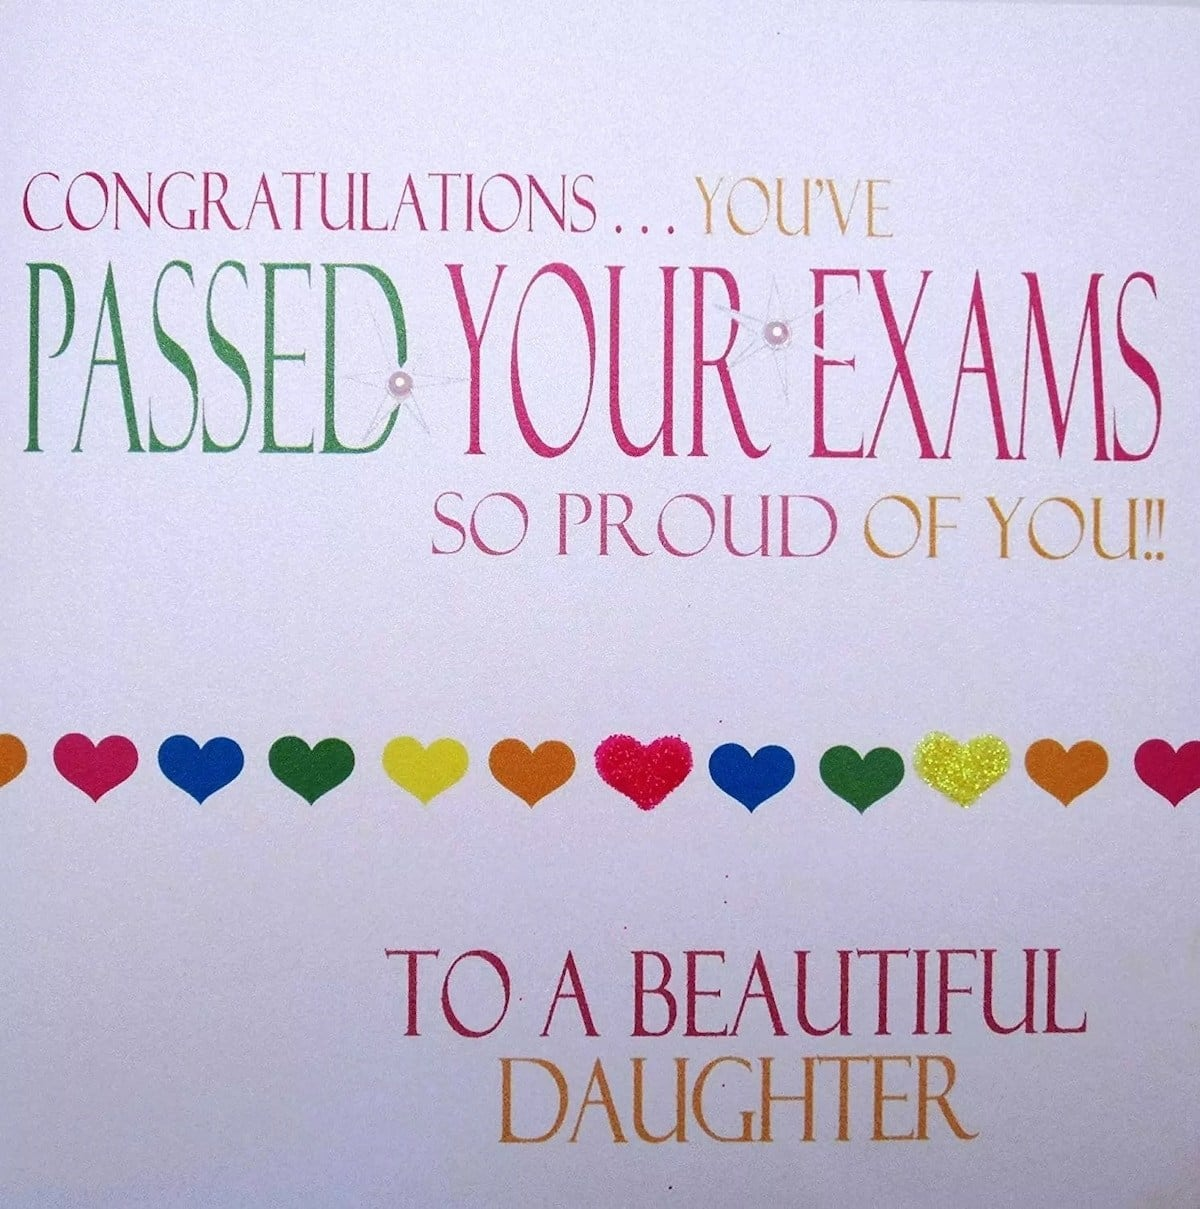 congratulations message for passing the exam, exam pass congratulations sms, pass exam congratulations messages